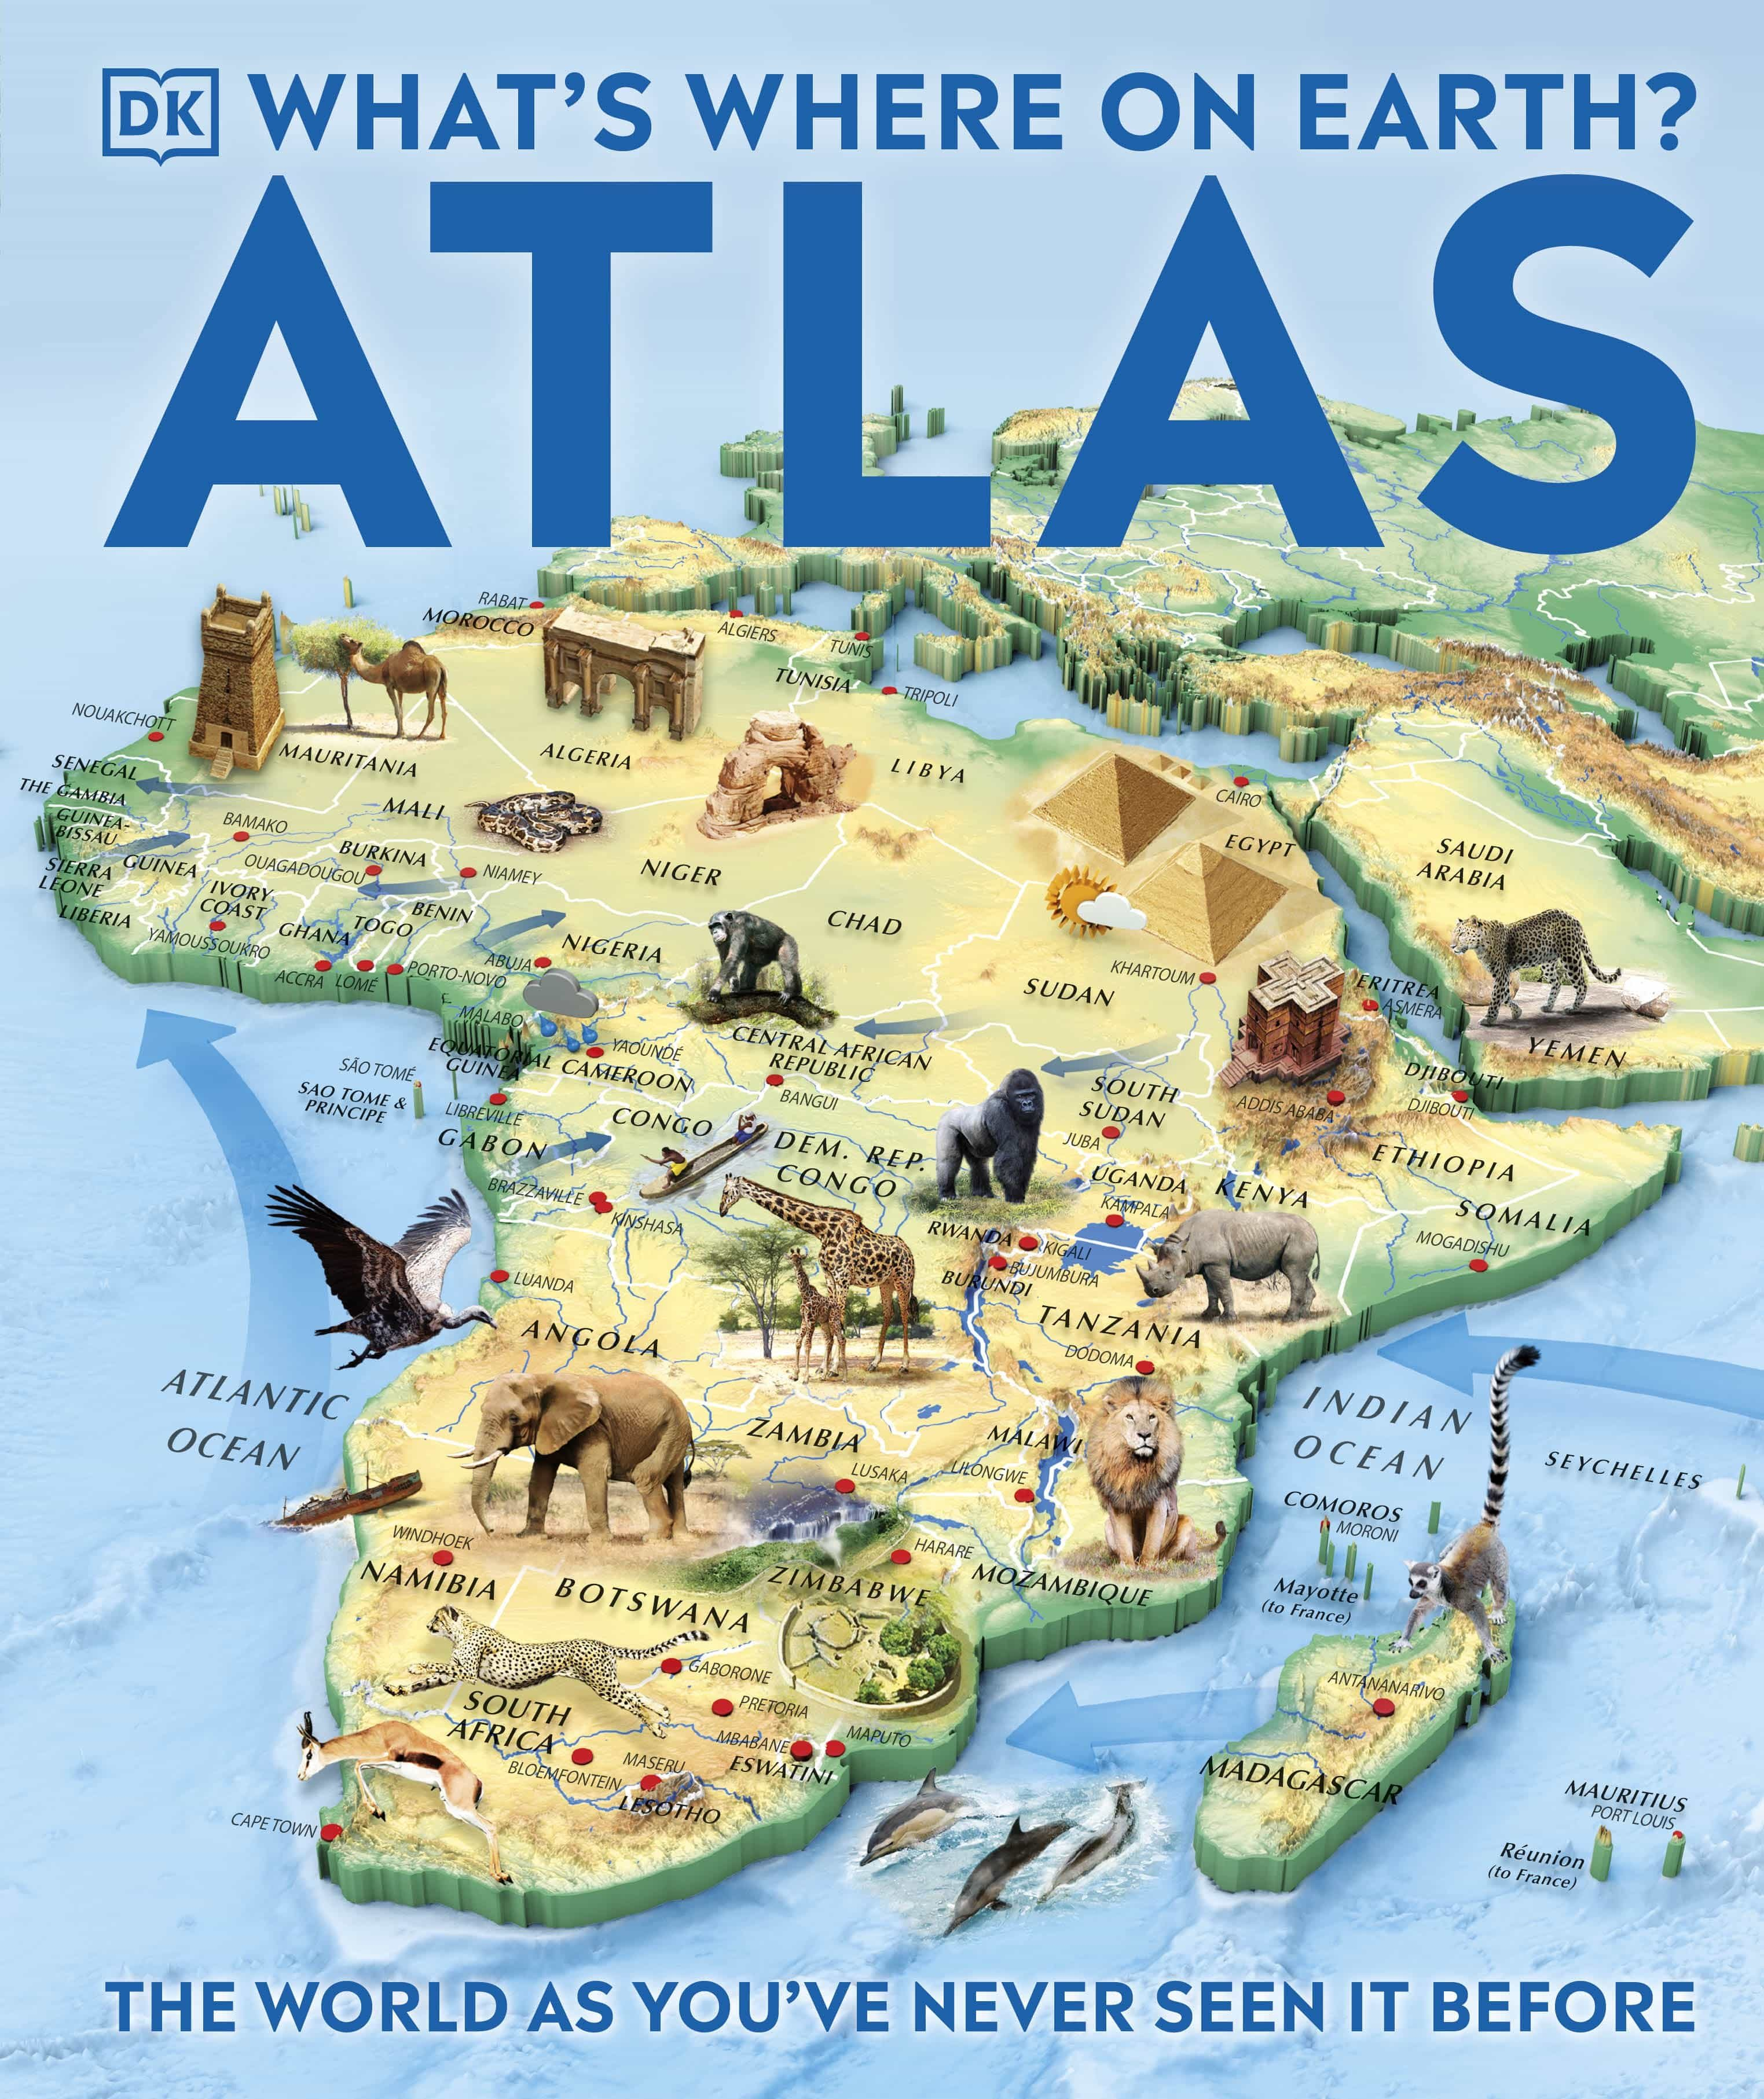 Whats where on earth atlas ebook descargar libro pdf o epub whats where on earth atlas ebook 9780241308691 gumiabroncs Images